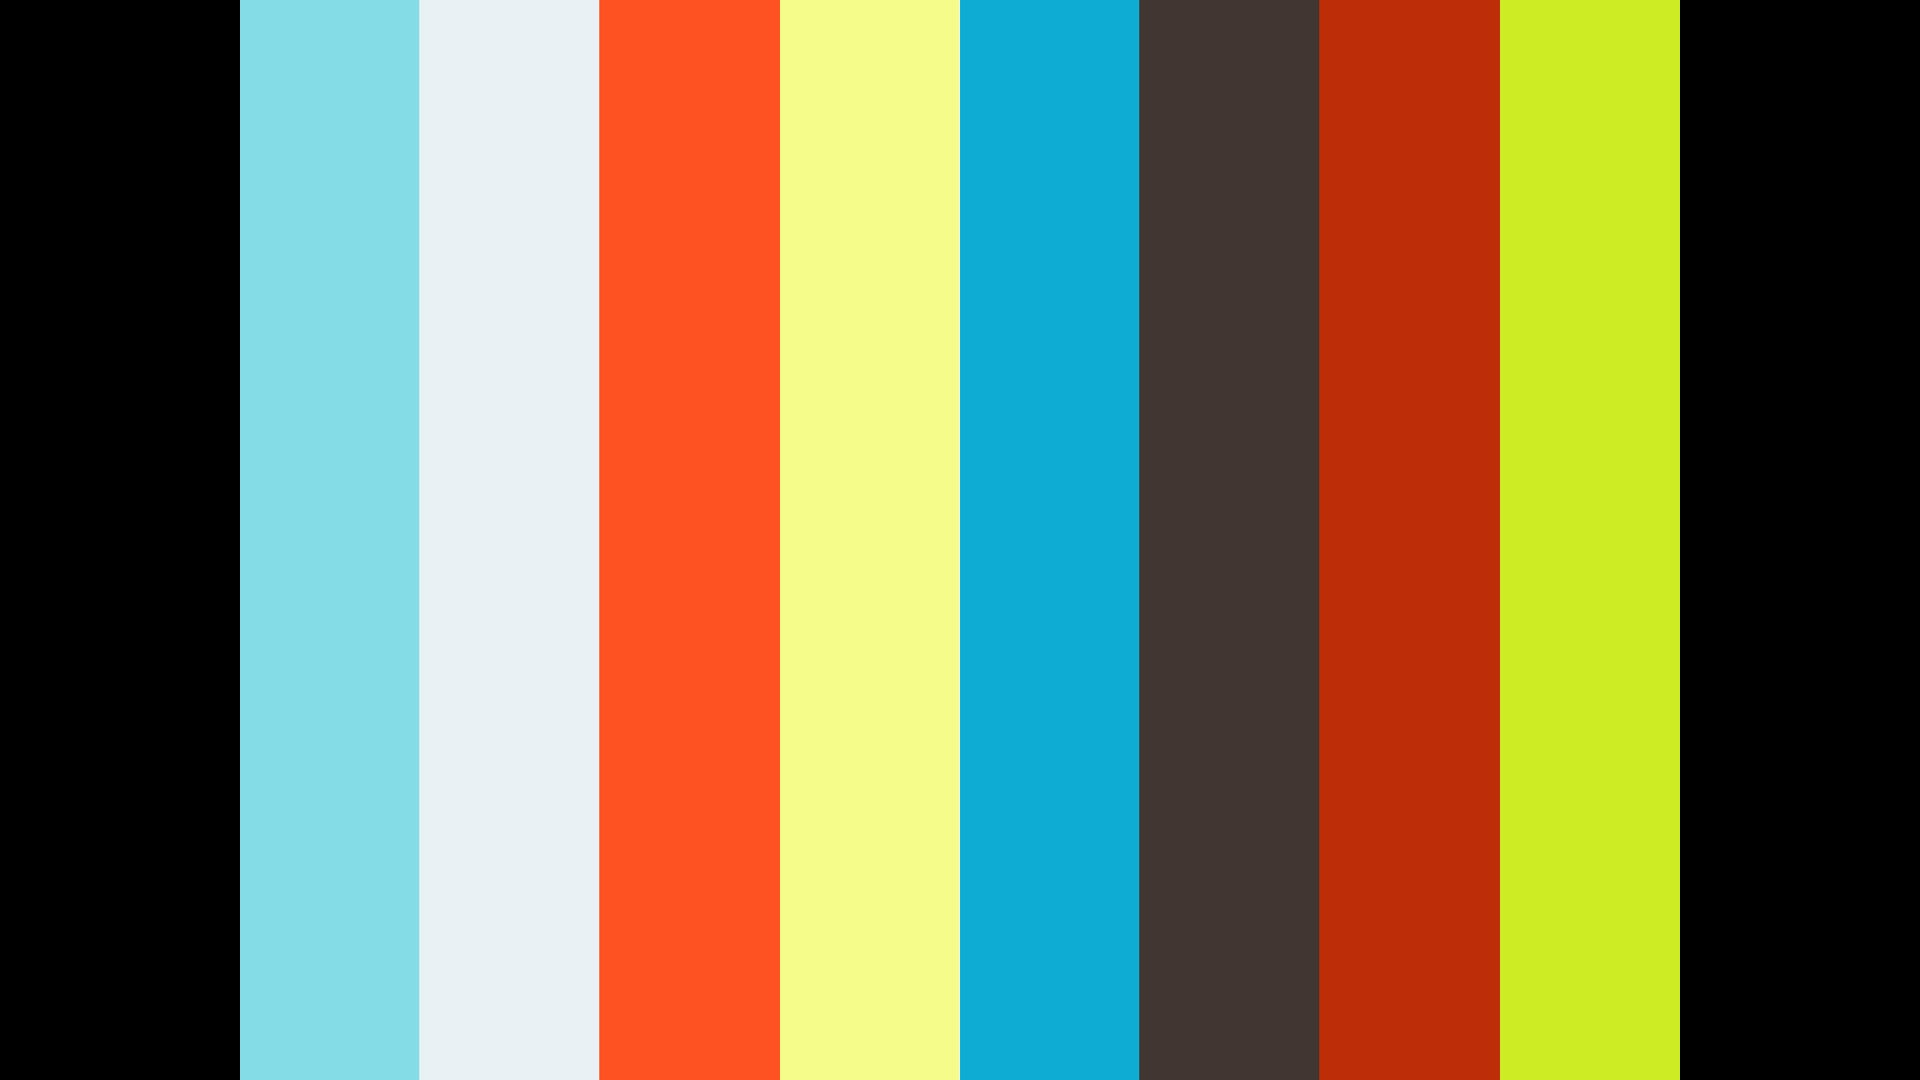 Talk by Karl Schoonover [6]